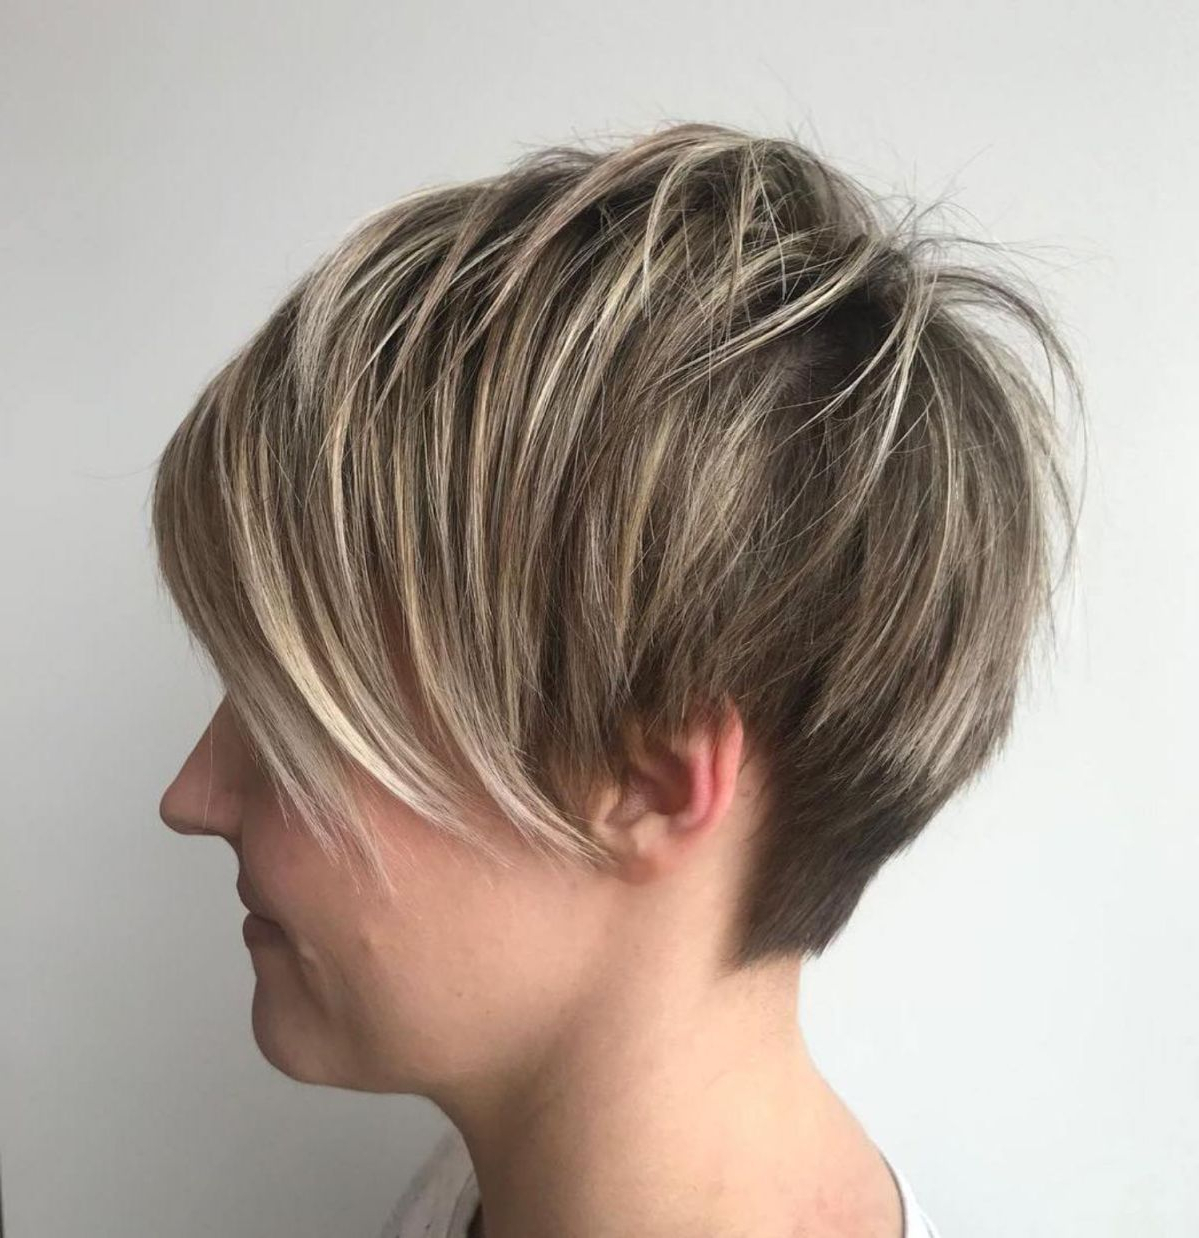 Pixie Haircuts With Bangs – 50 Terrific Tapers In 2018 | Best | Hair For Textured Pixie Hairstyles With Highlights (View 4 of 20)